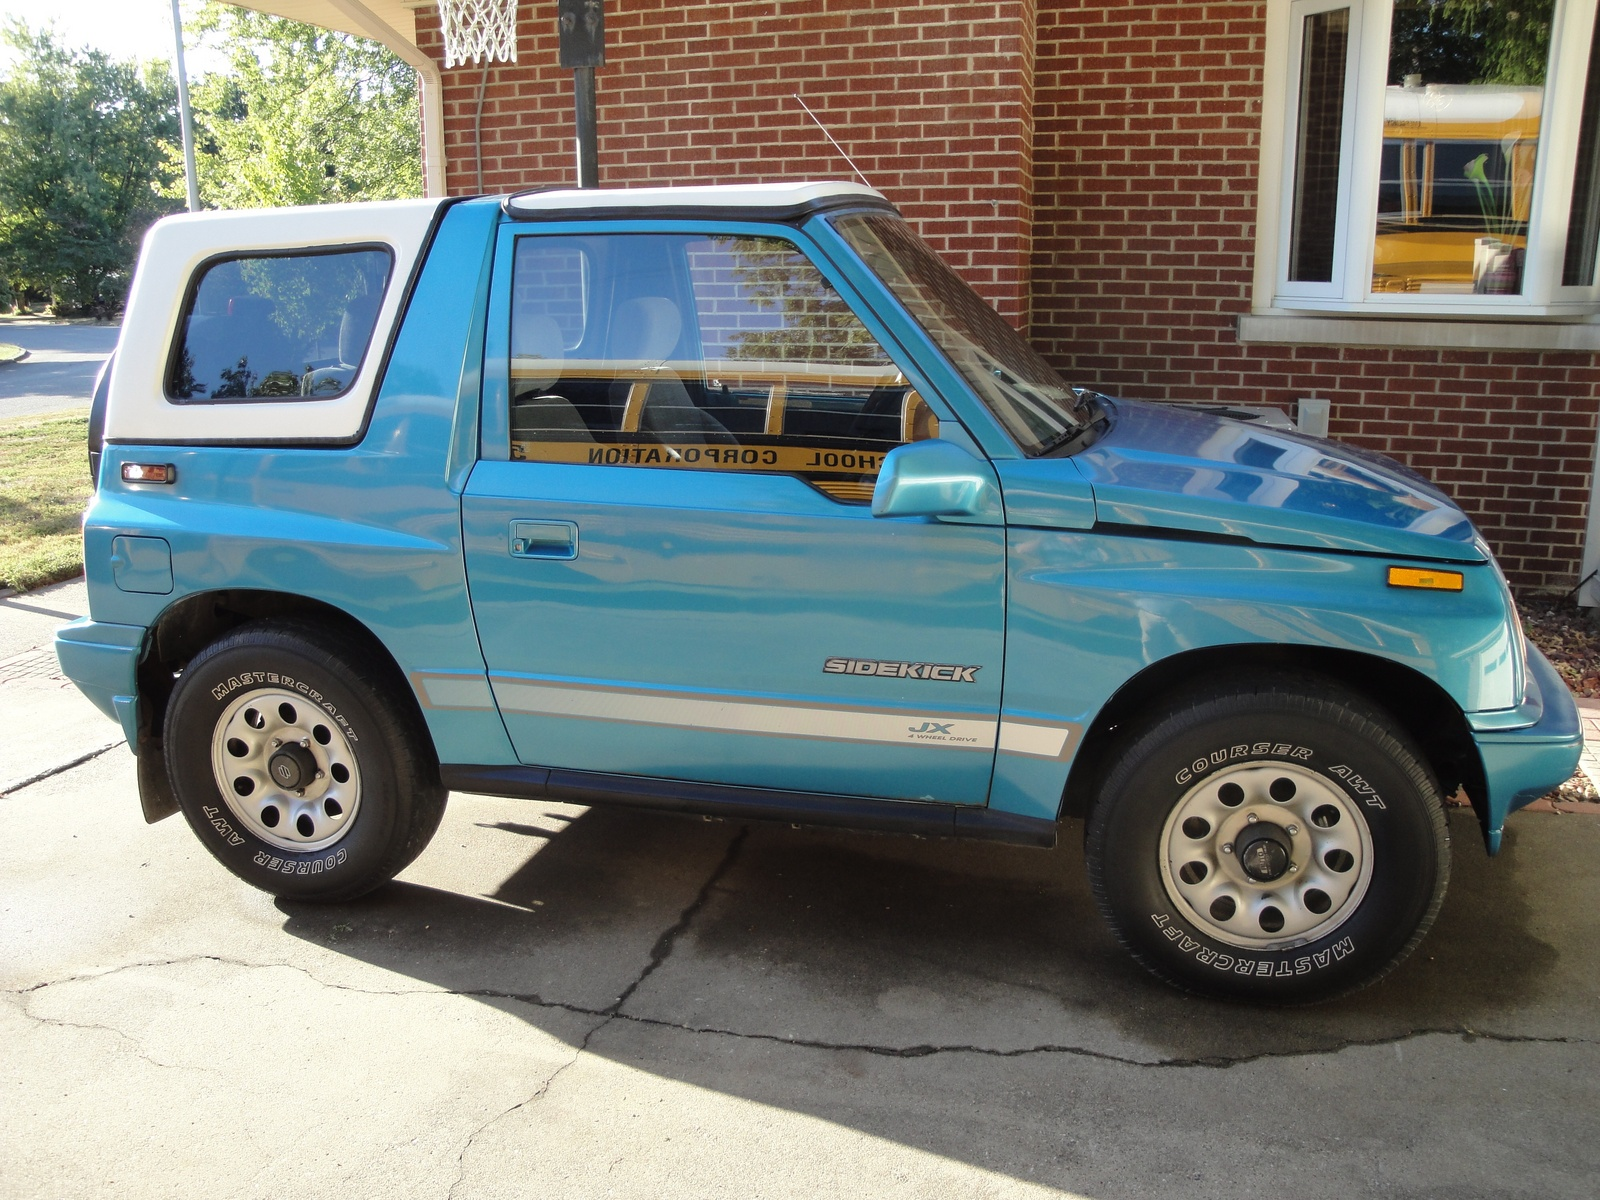 1996 Suzuki Sidekick Information And Photos Zomb Drive